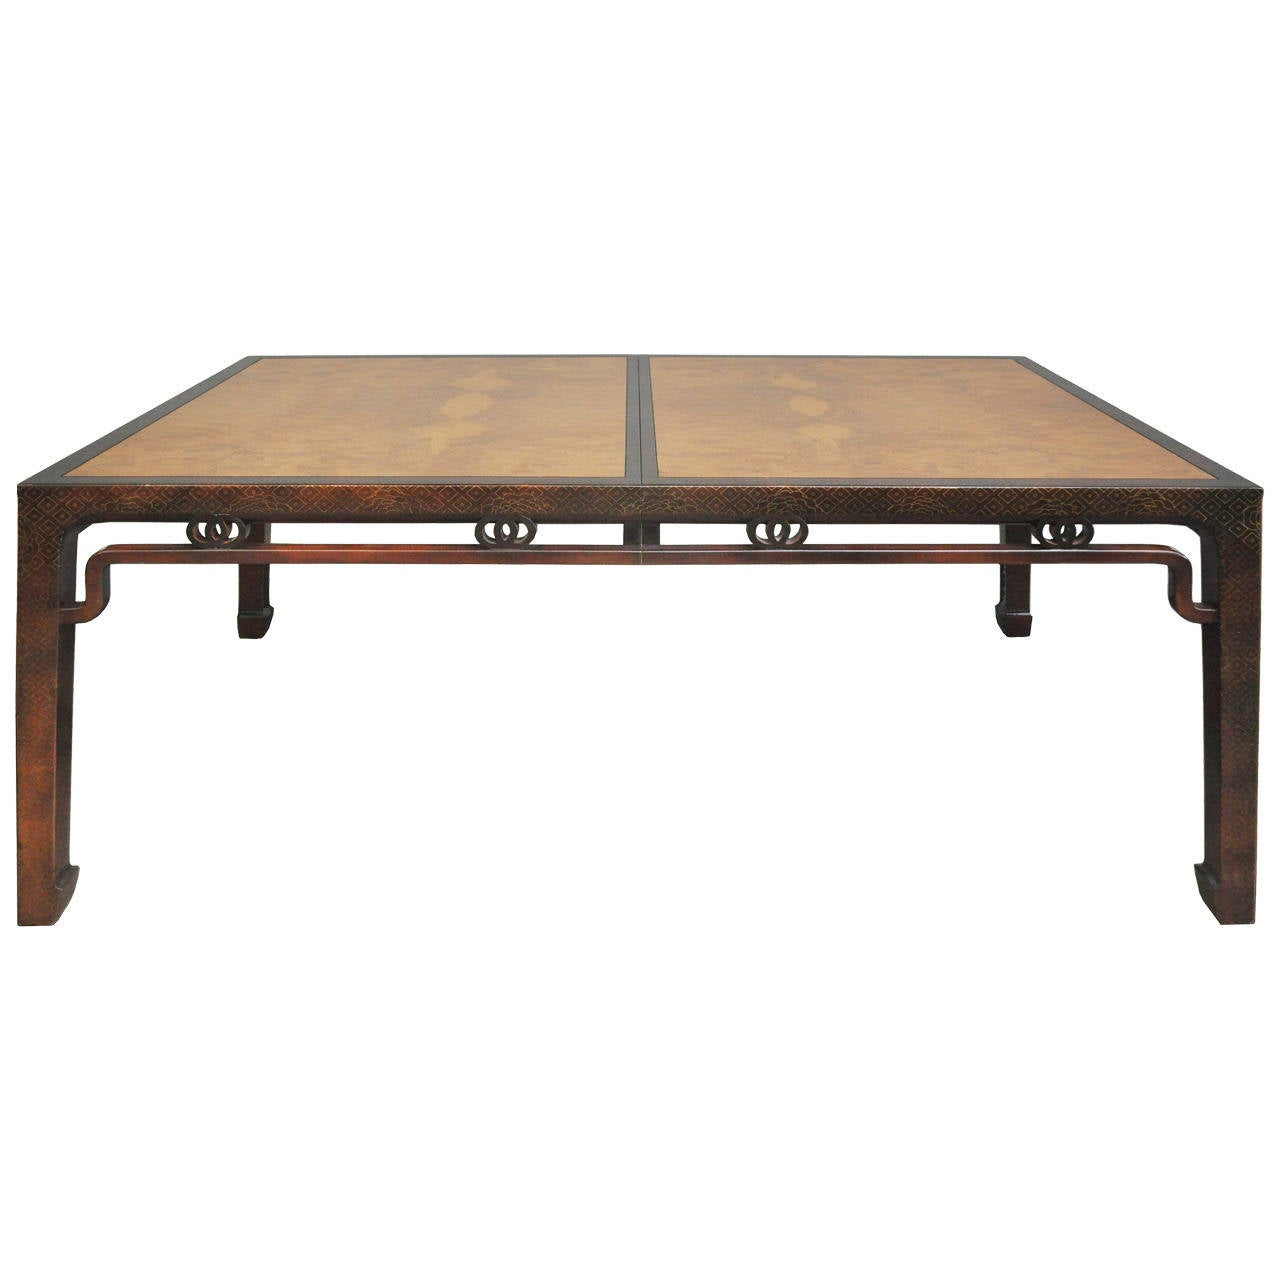 baker furniture chinoiserie style dining table at 1stdibs